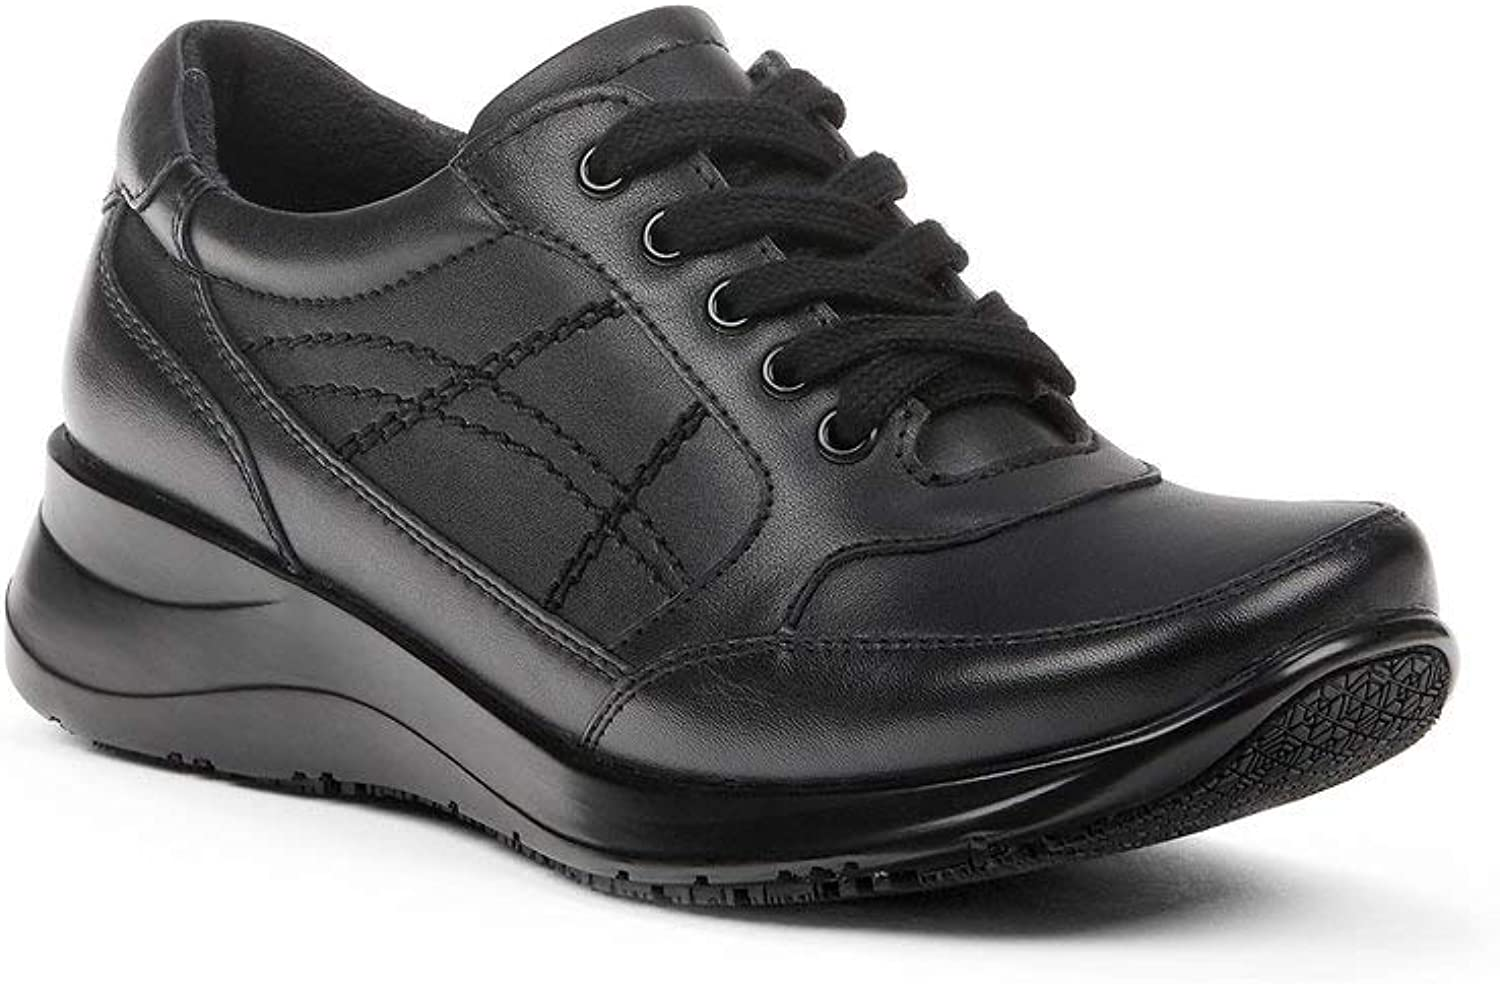 Yellow shoes - CALIBREE - Women's Slip Resistant Duty shoes - Perfect for Long Days at Work